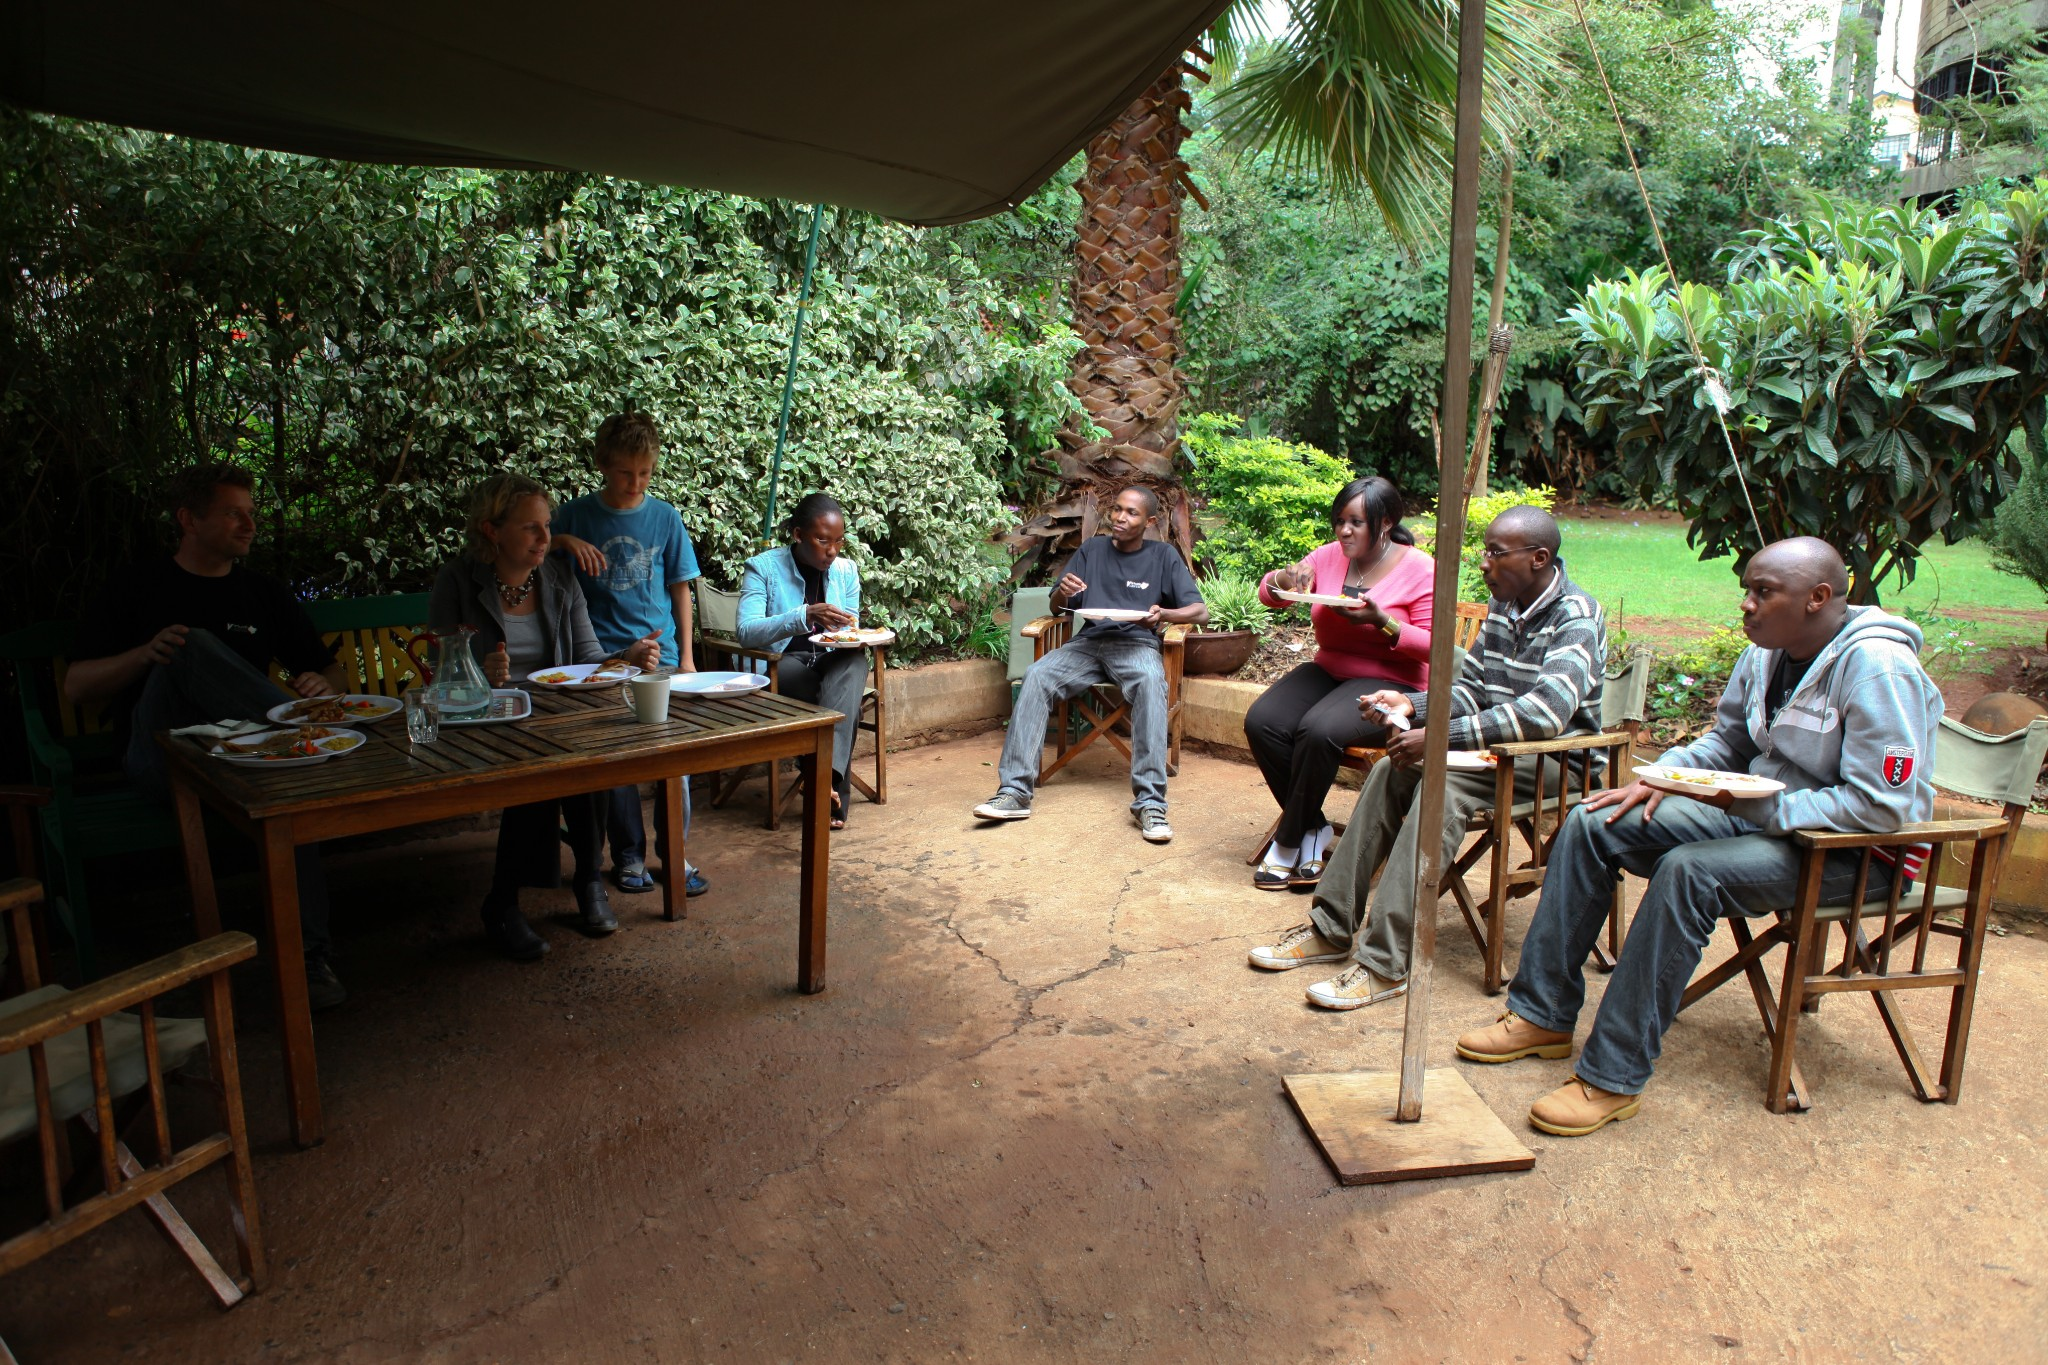 Photo: Mark De Blois, his family, and the Upande team treated me lunch at his house.